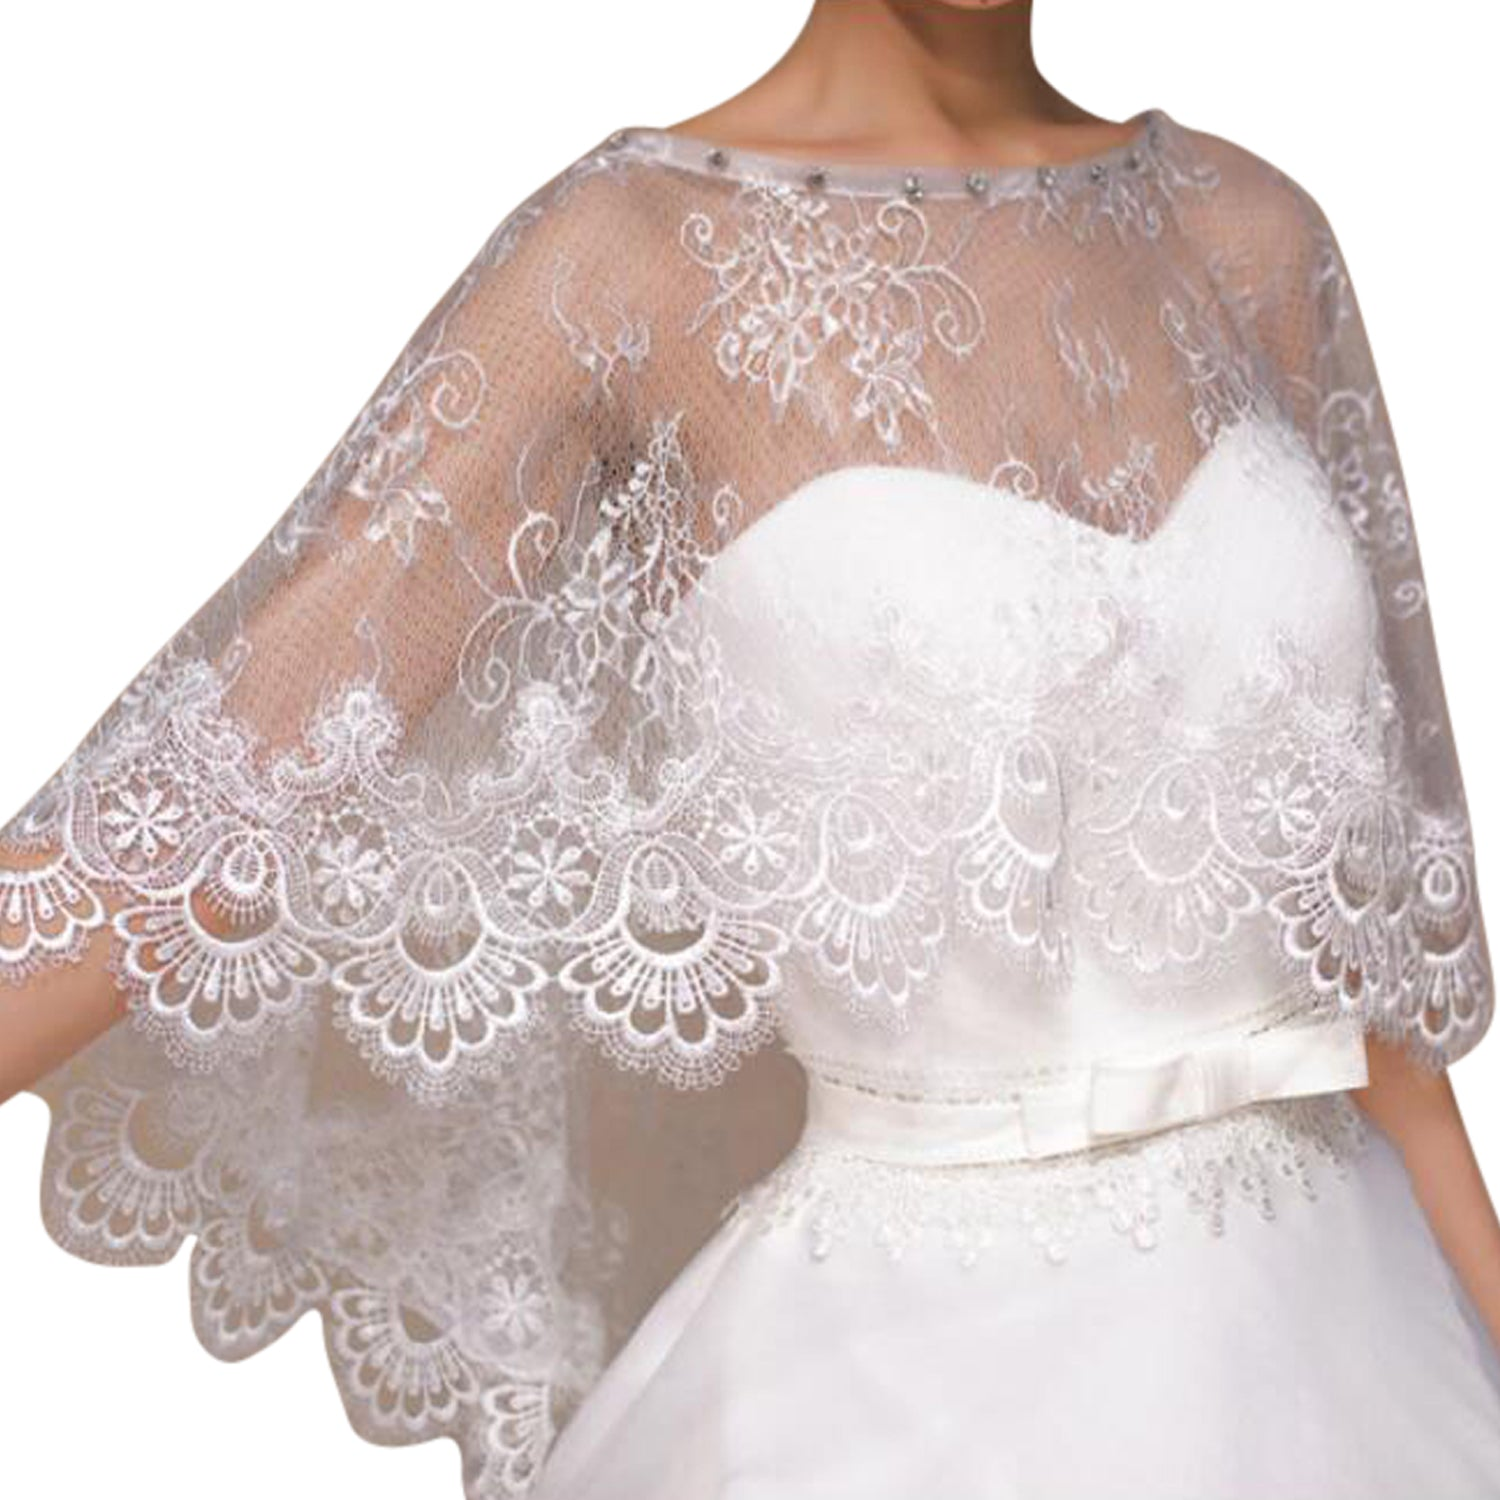 489ba4a4c4 Load image into Gallery viewer, Luxury Ivory Lace Wedding Capelet Bridal  Shawl With Crystals Style ...